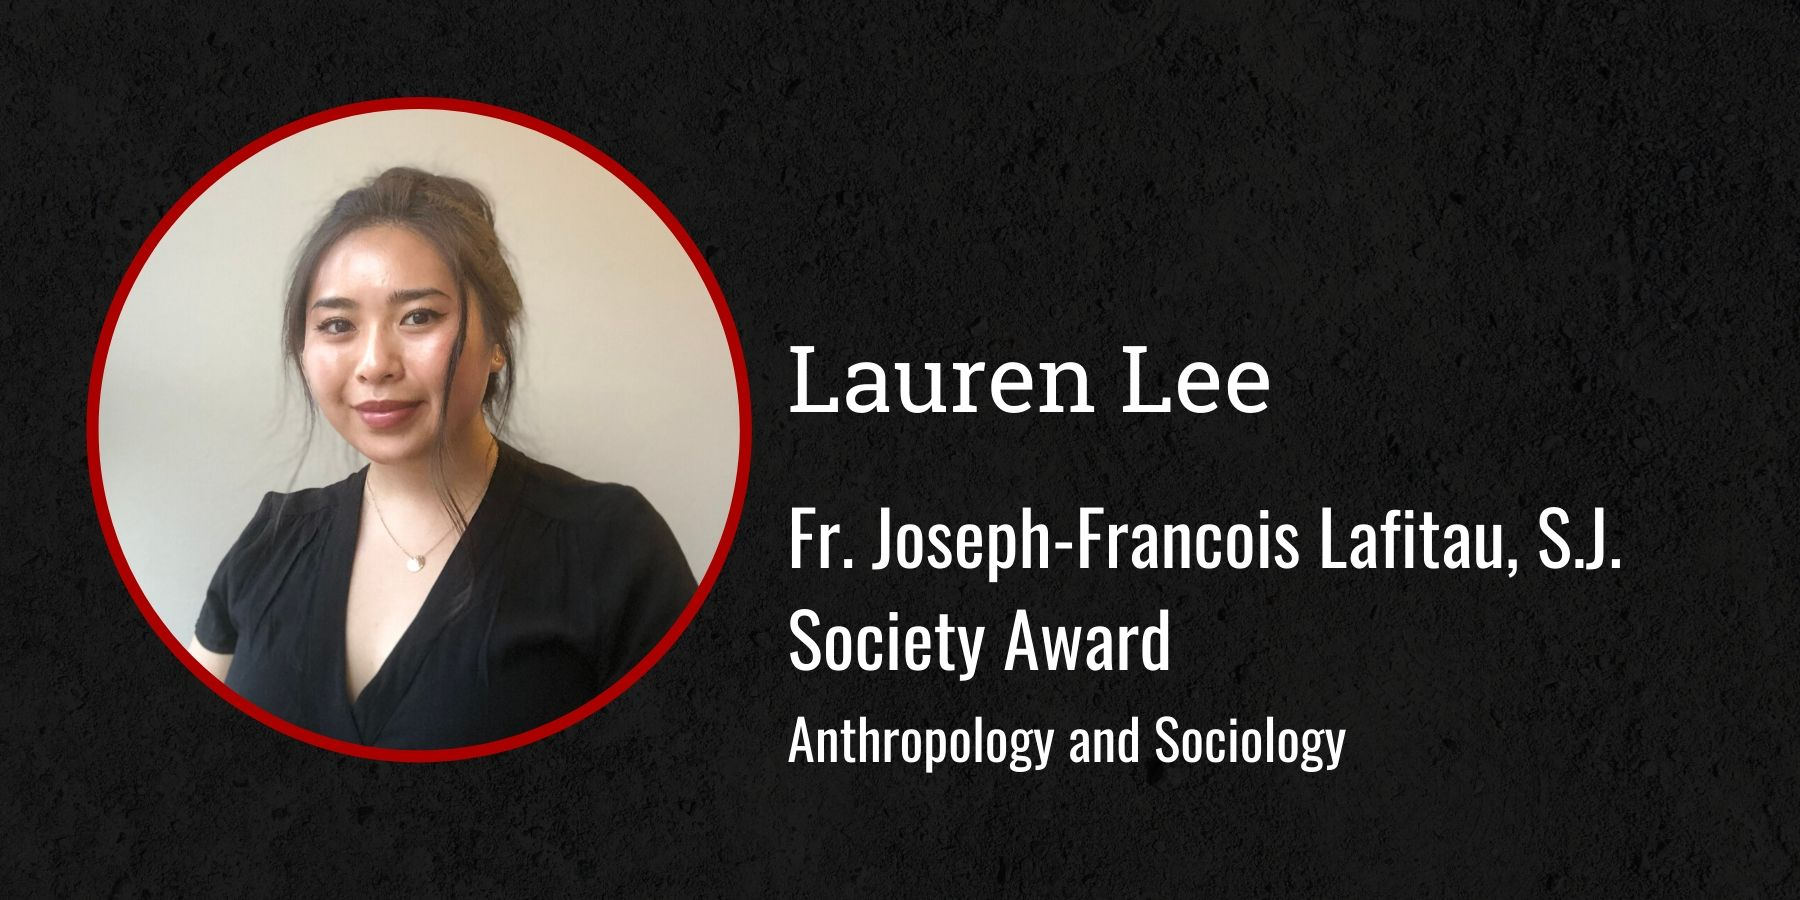 Photo of Lauren Lee and text Fr. Eugene Buechel, S.J. Award,  Anthropology and Sociology